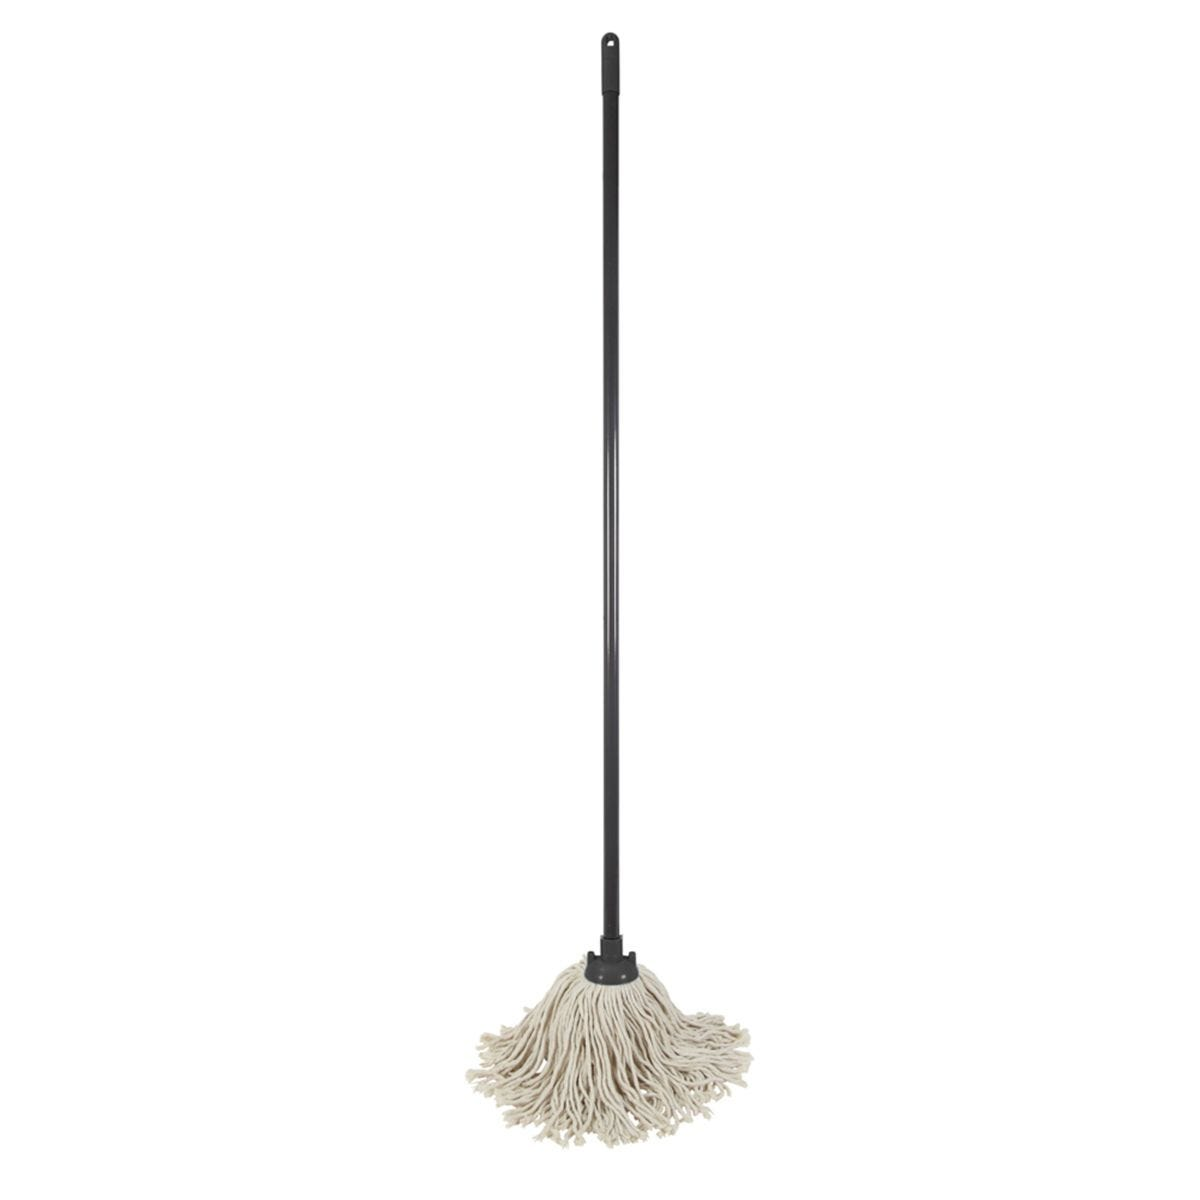 JVL Pure Cotton Traditional String Floor Mop Grey/Turquoise